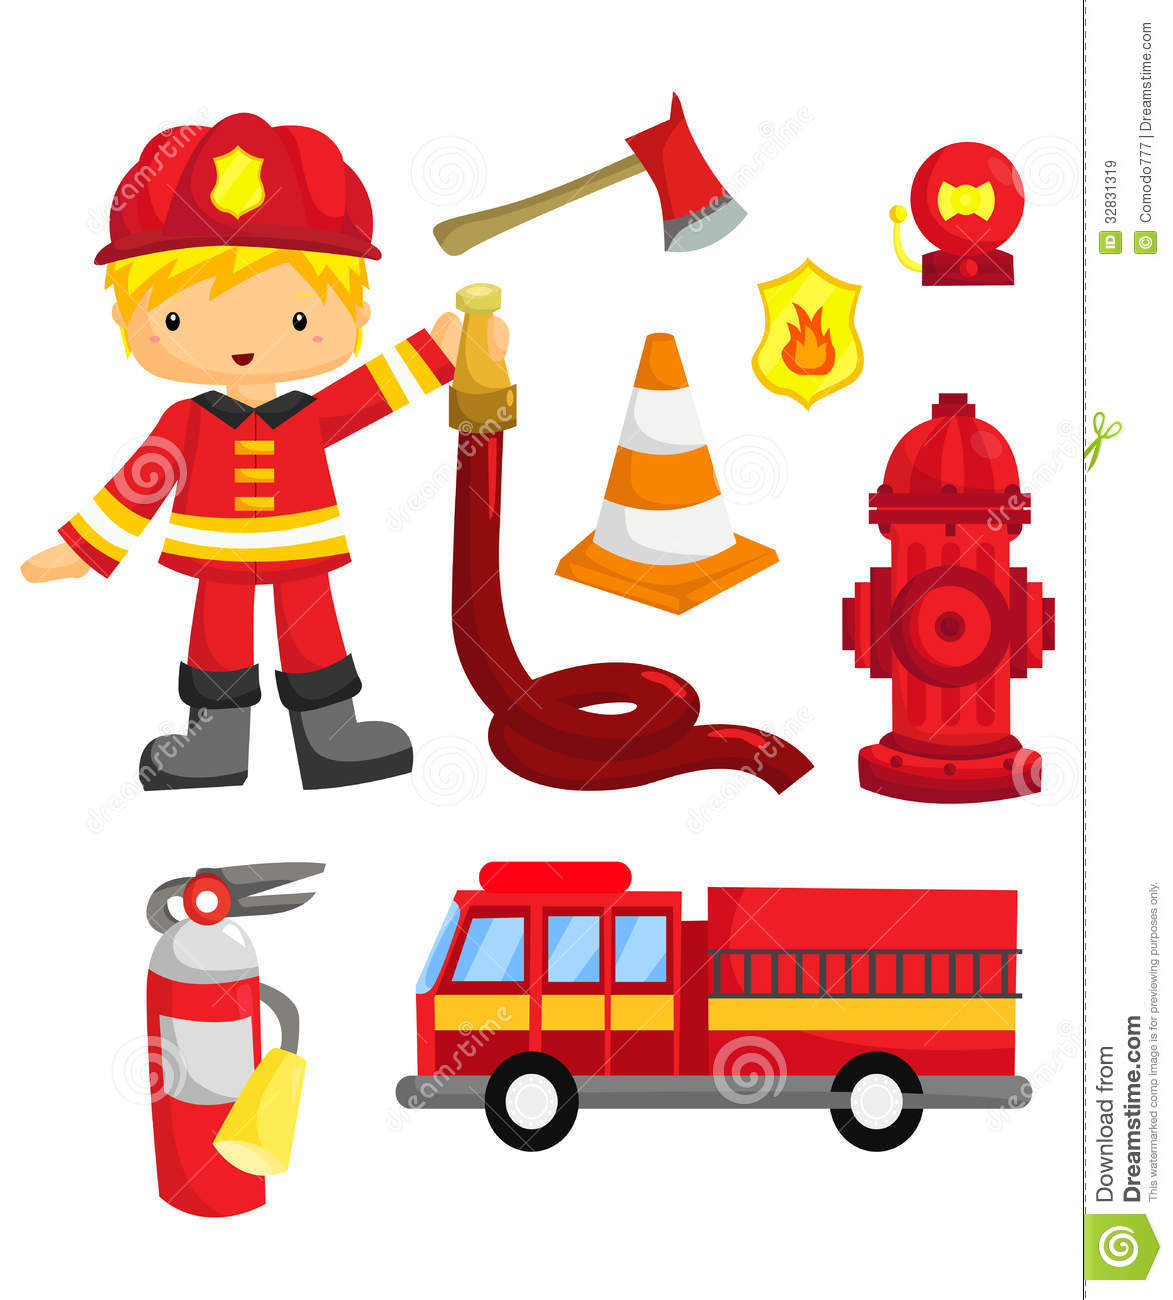 Fireman Vector Set Royalty Free Stock Images - Image: 32831319